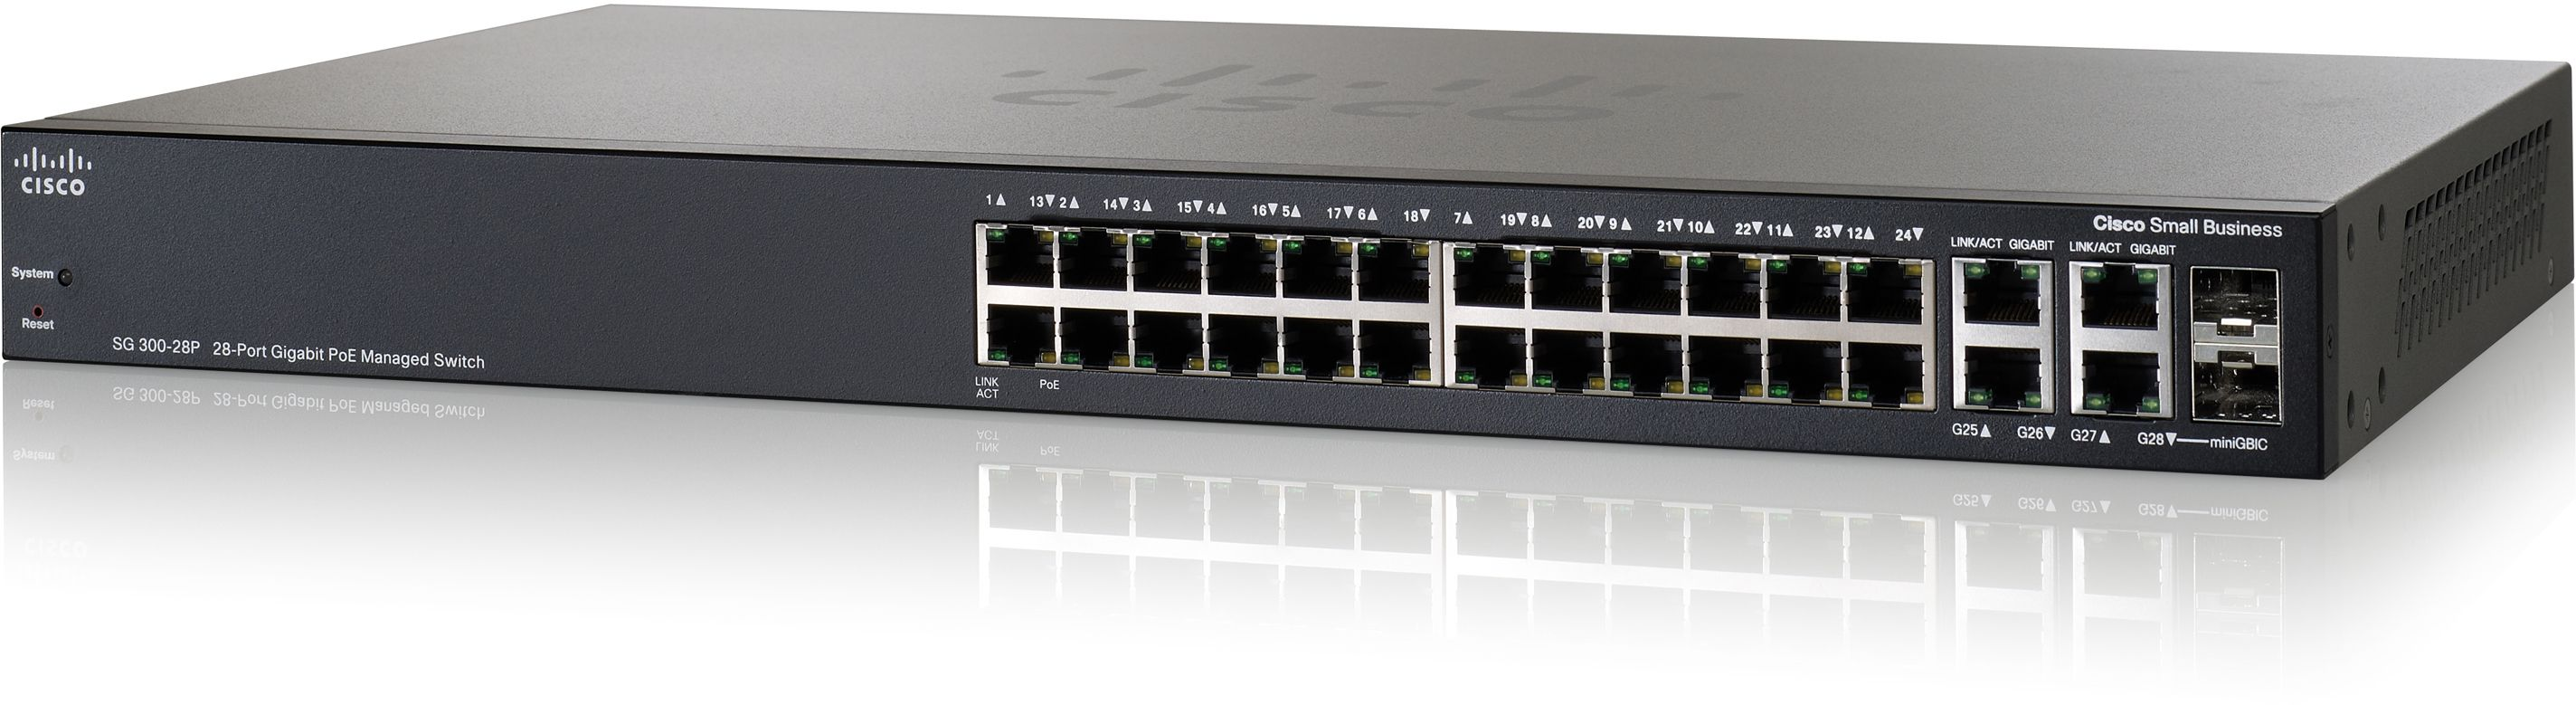 what is a network switch what are the features